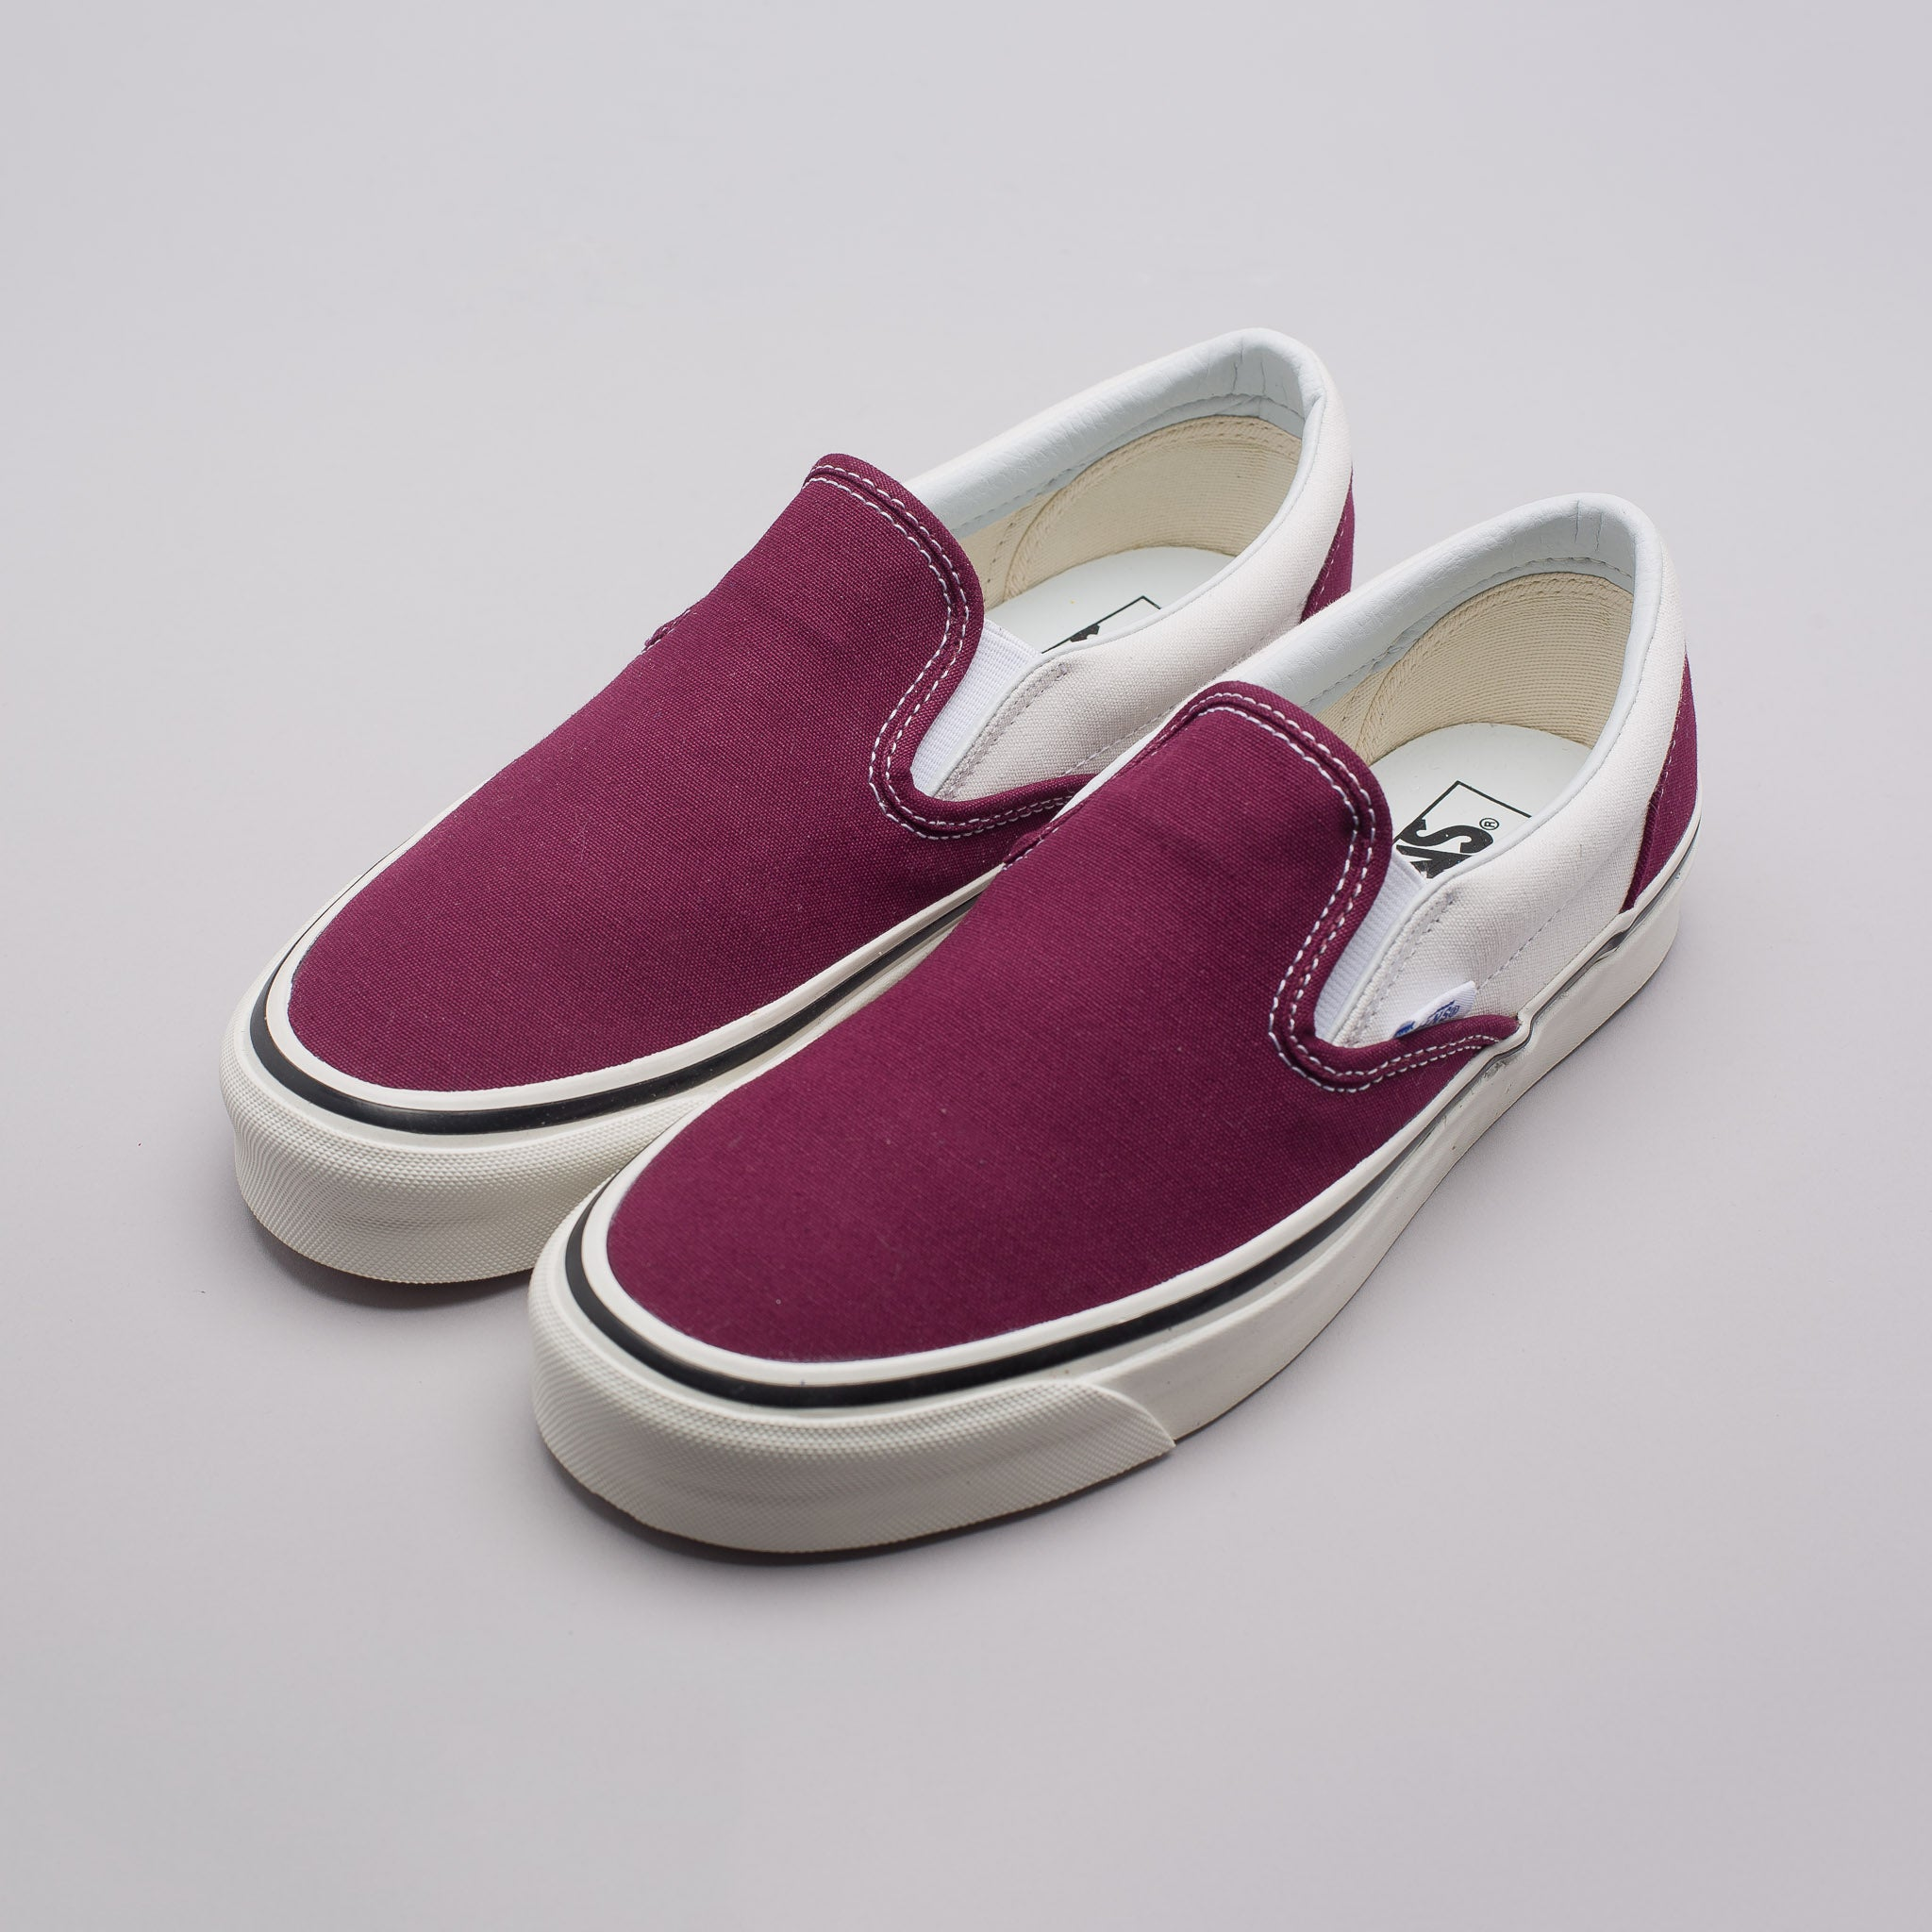 2cc46d798a1 Vans Classic Slip-On 9 Anaheim Factory in OG Burgundy